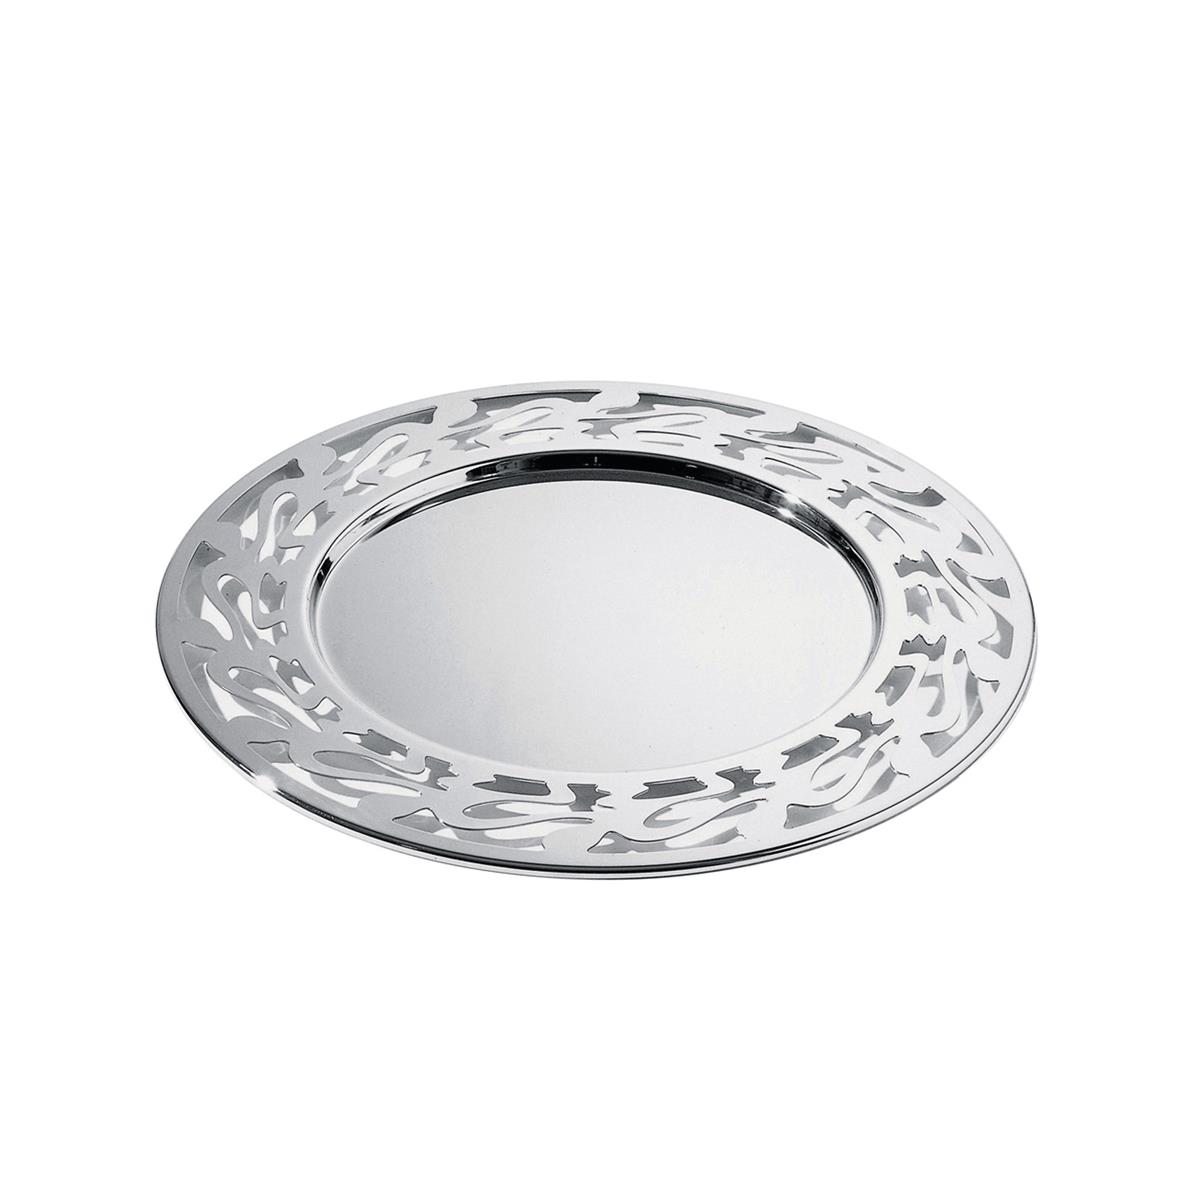 Alessi-Ethno Placemat with perforated edge in 18/10 stainless steel mirror polished